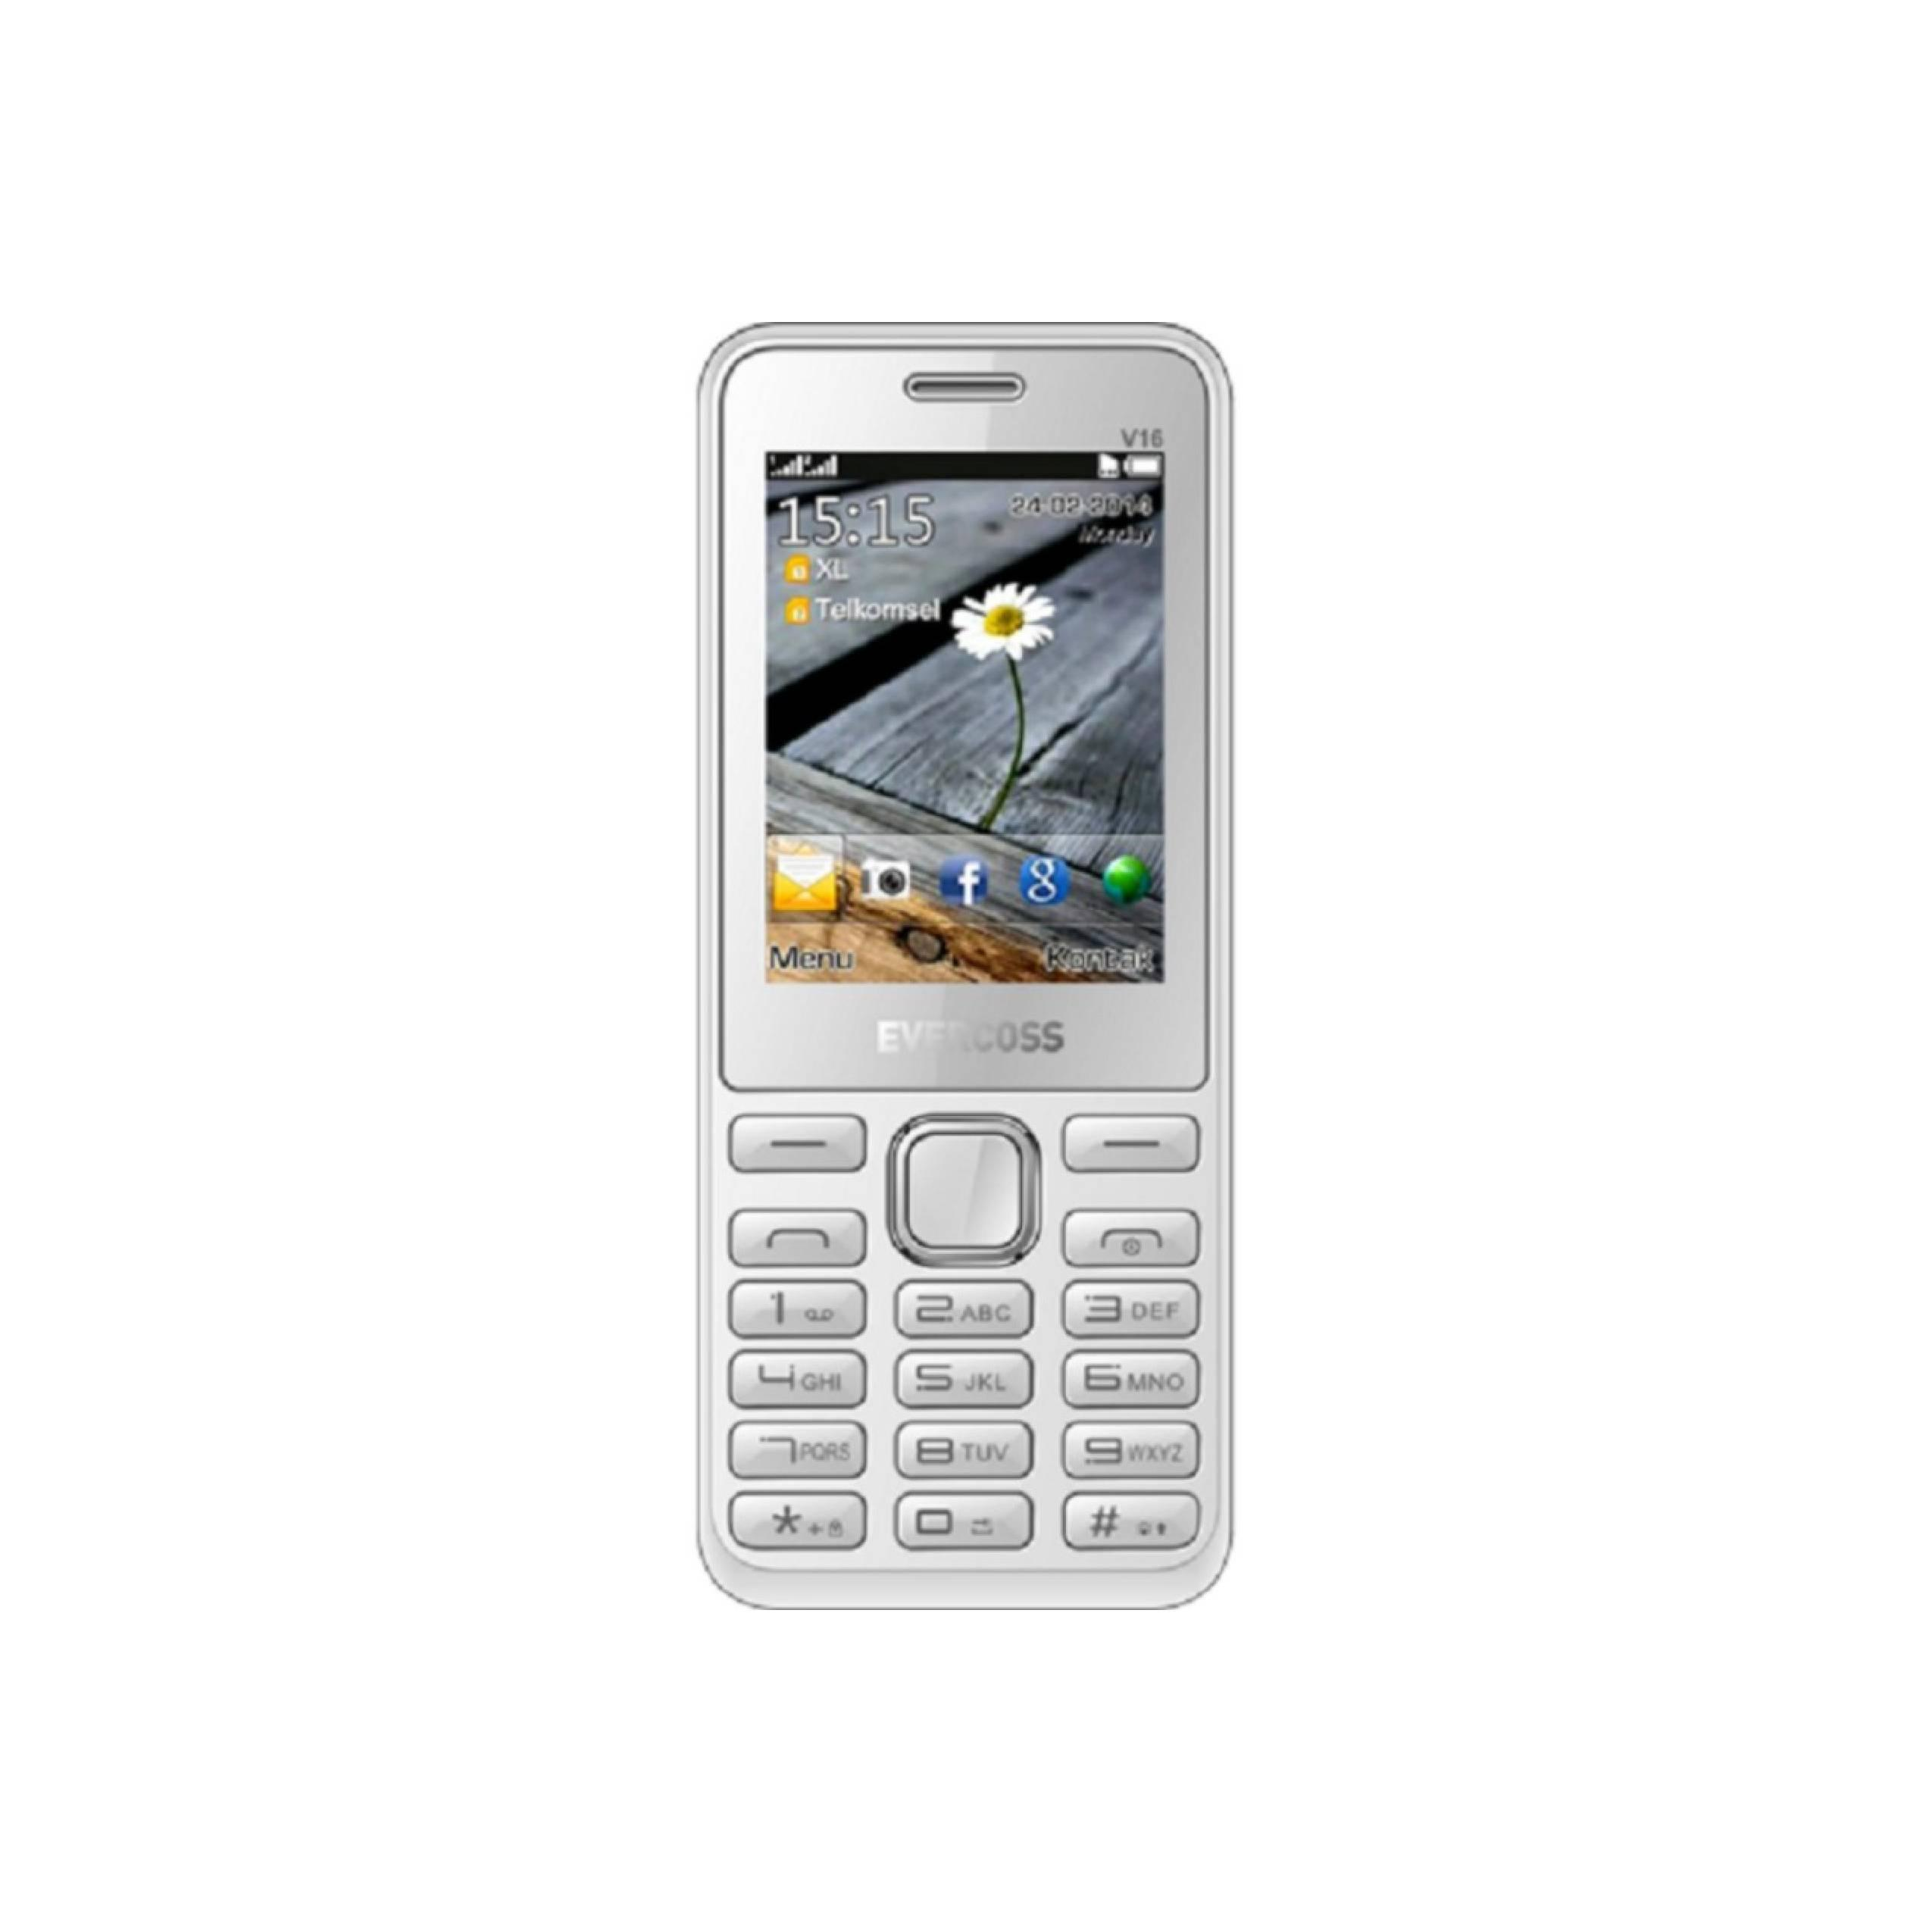 Evercoss V16 Fun Series - Dual SIM - TV Analog - Putih